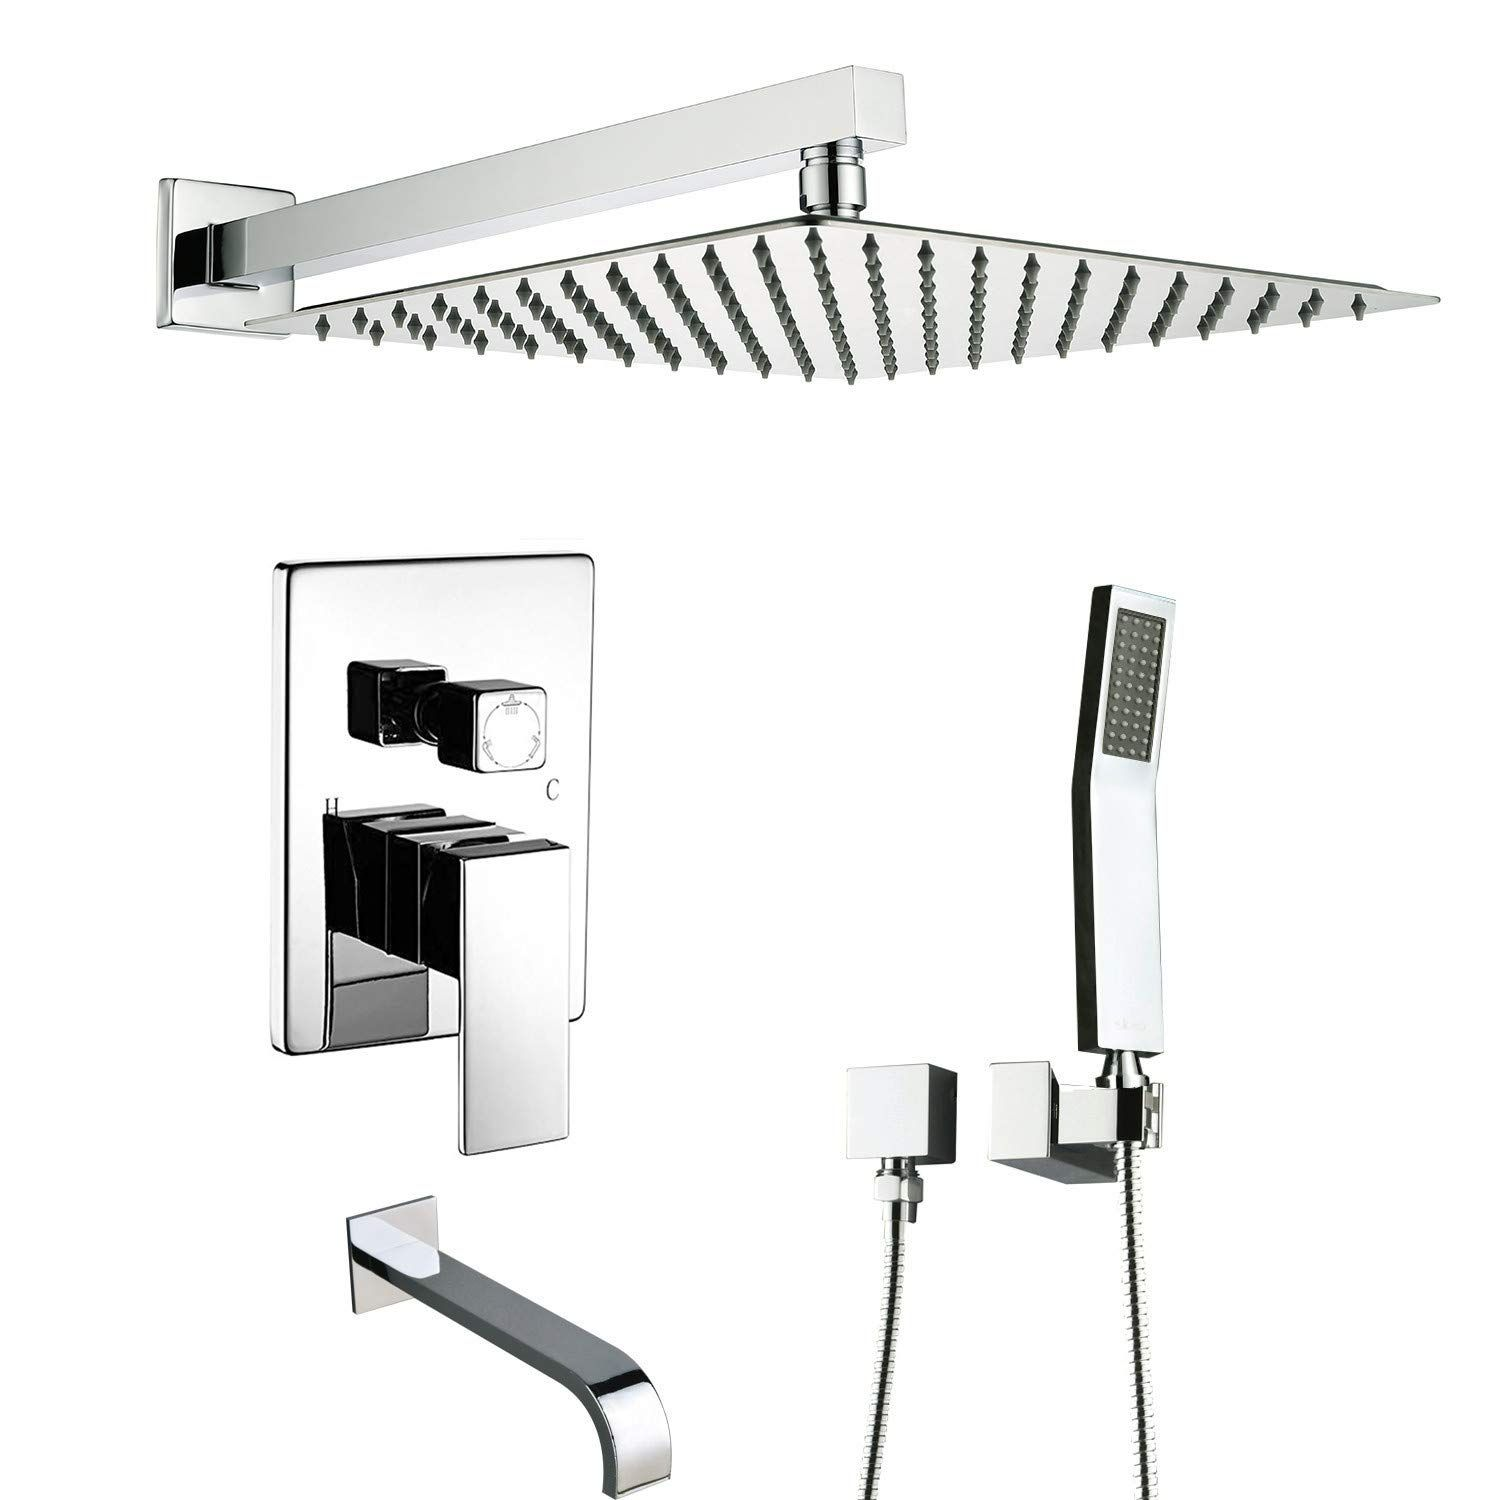 Artbath Shower System With Tub Spout Shower Faucets Set For Bathroom And High Pressure Rain Shower Head Rain Shower Head Tub And Shower Faucets Shower Systems